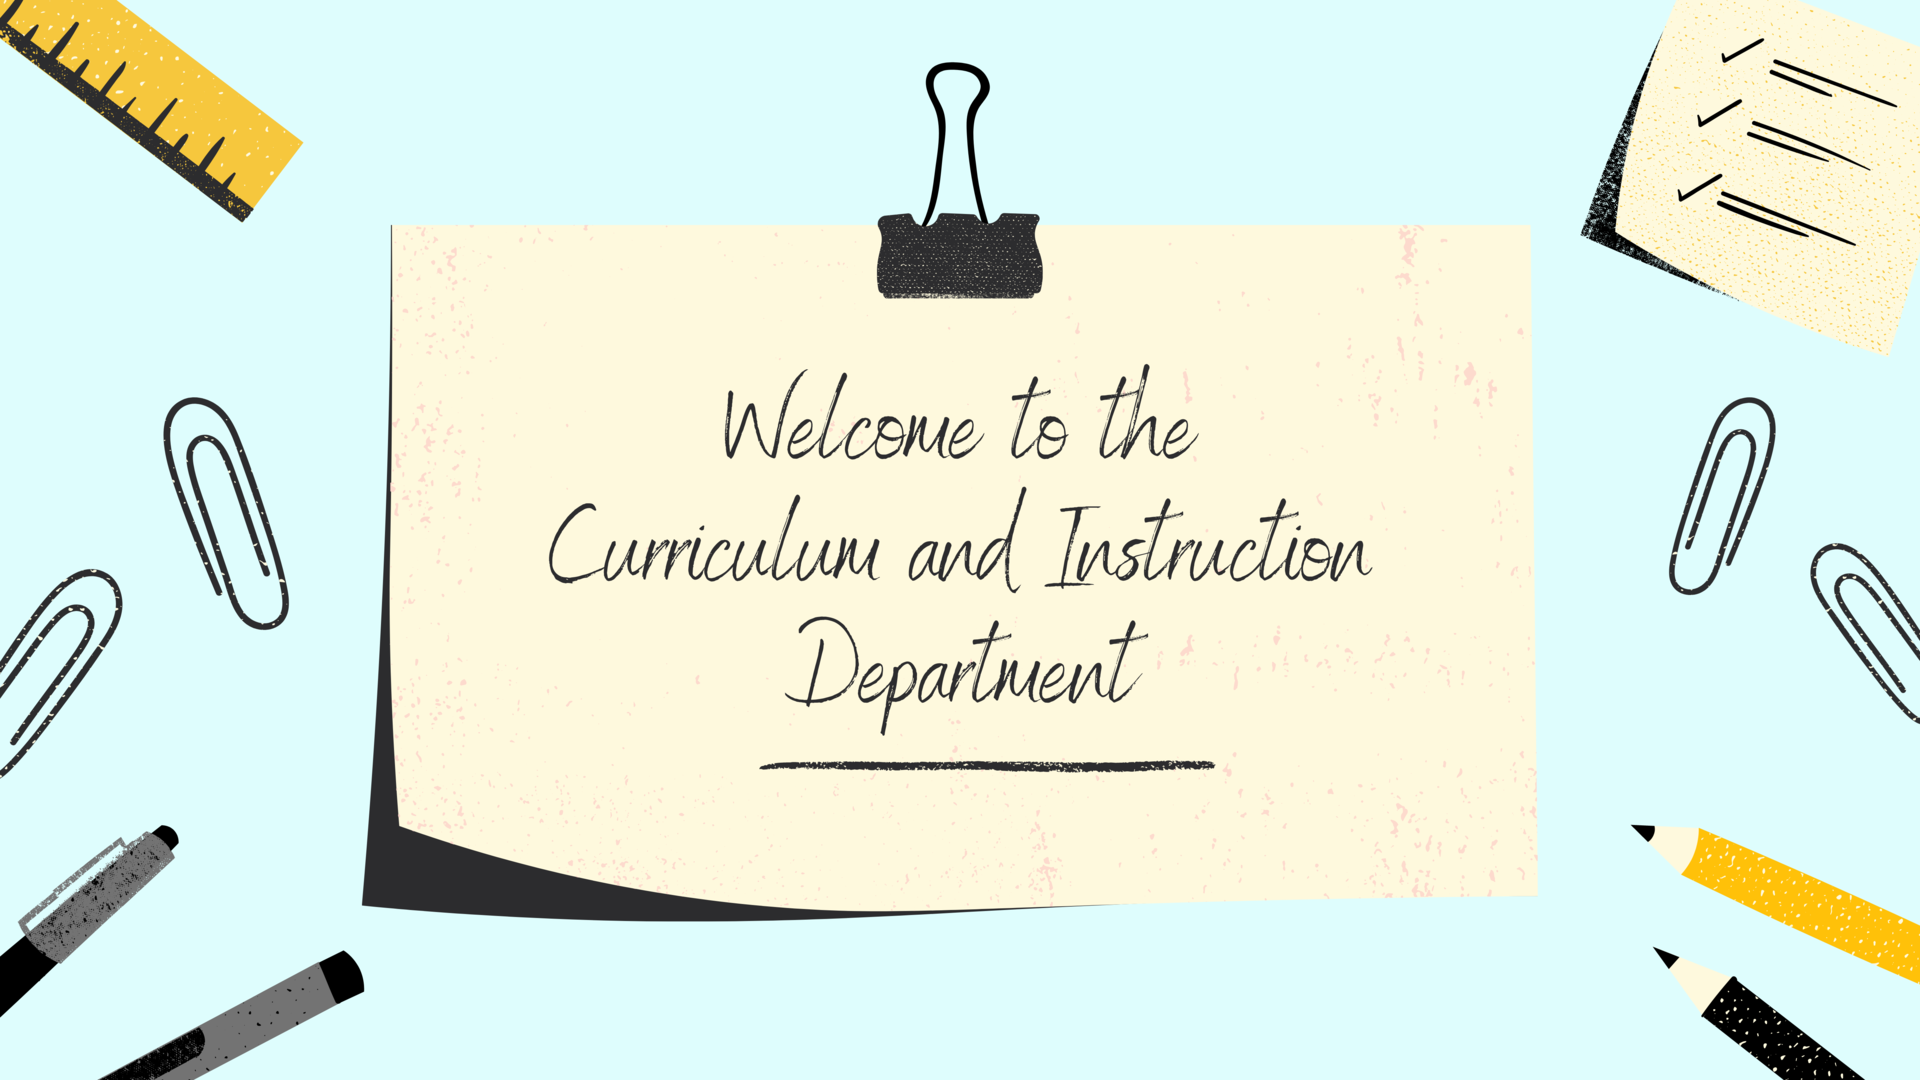 Welcome to the Curriculum and Instruction Department